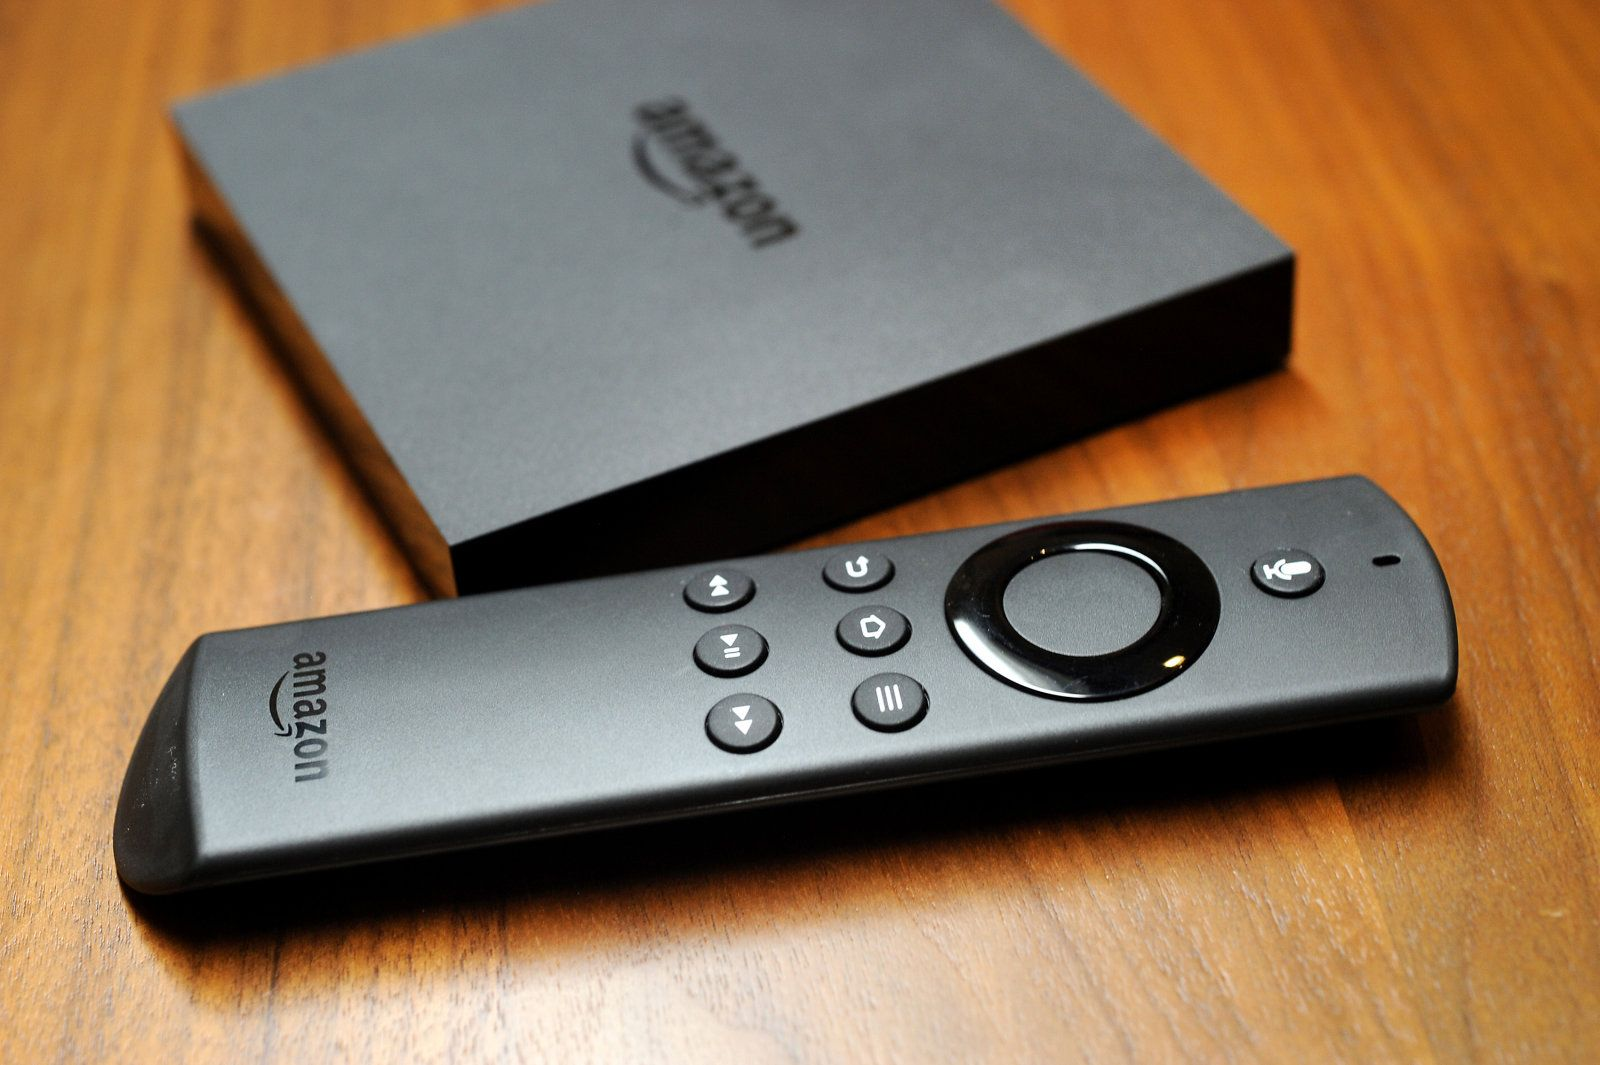 Your Amazon login can sign you into HBO Now and Showtime